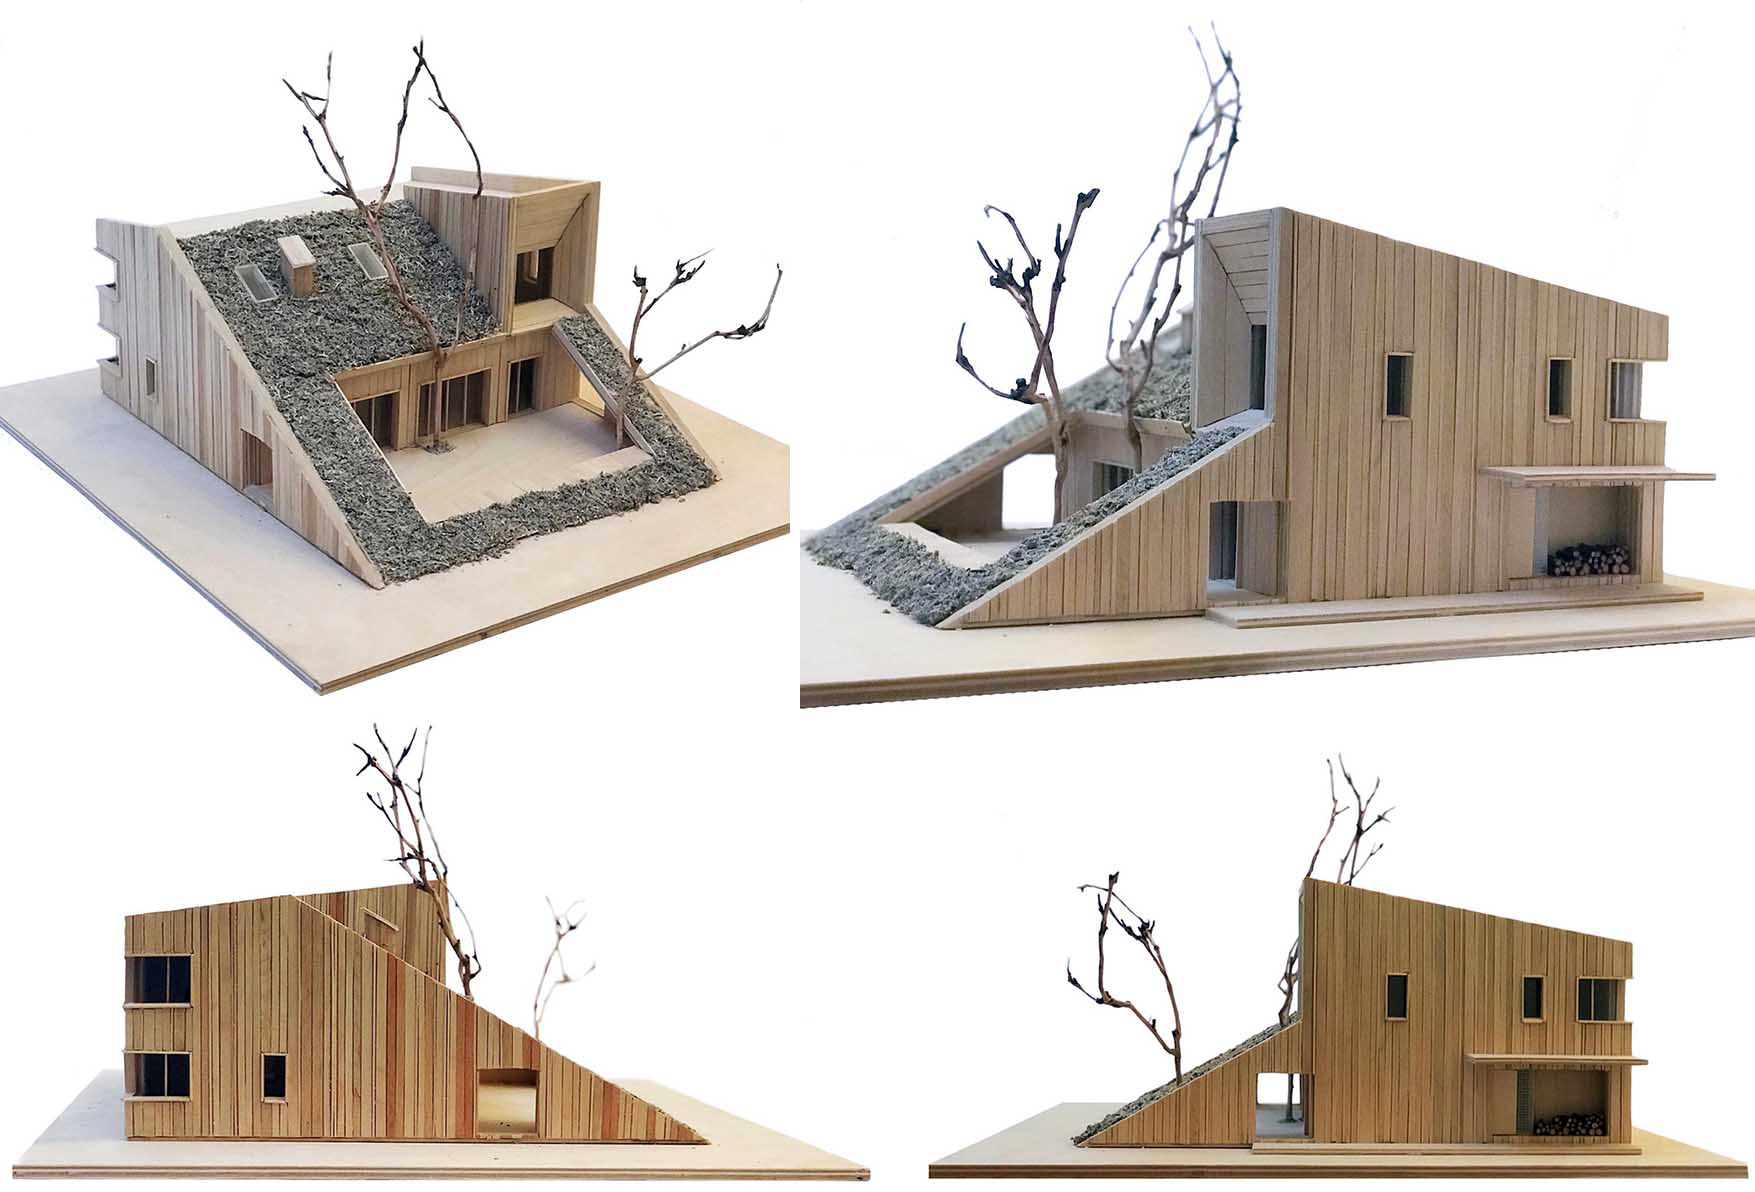 The model of a modern house with a sloped green roof.